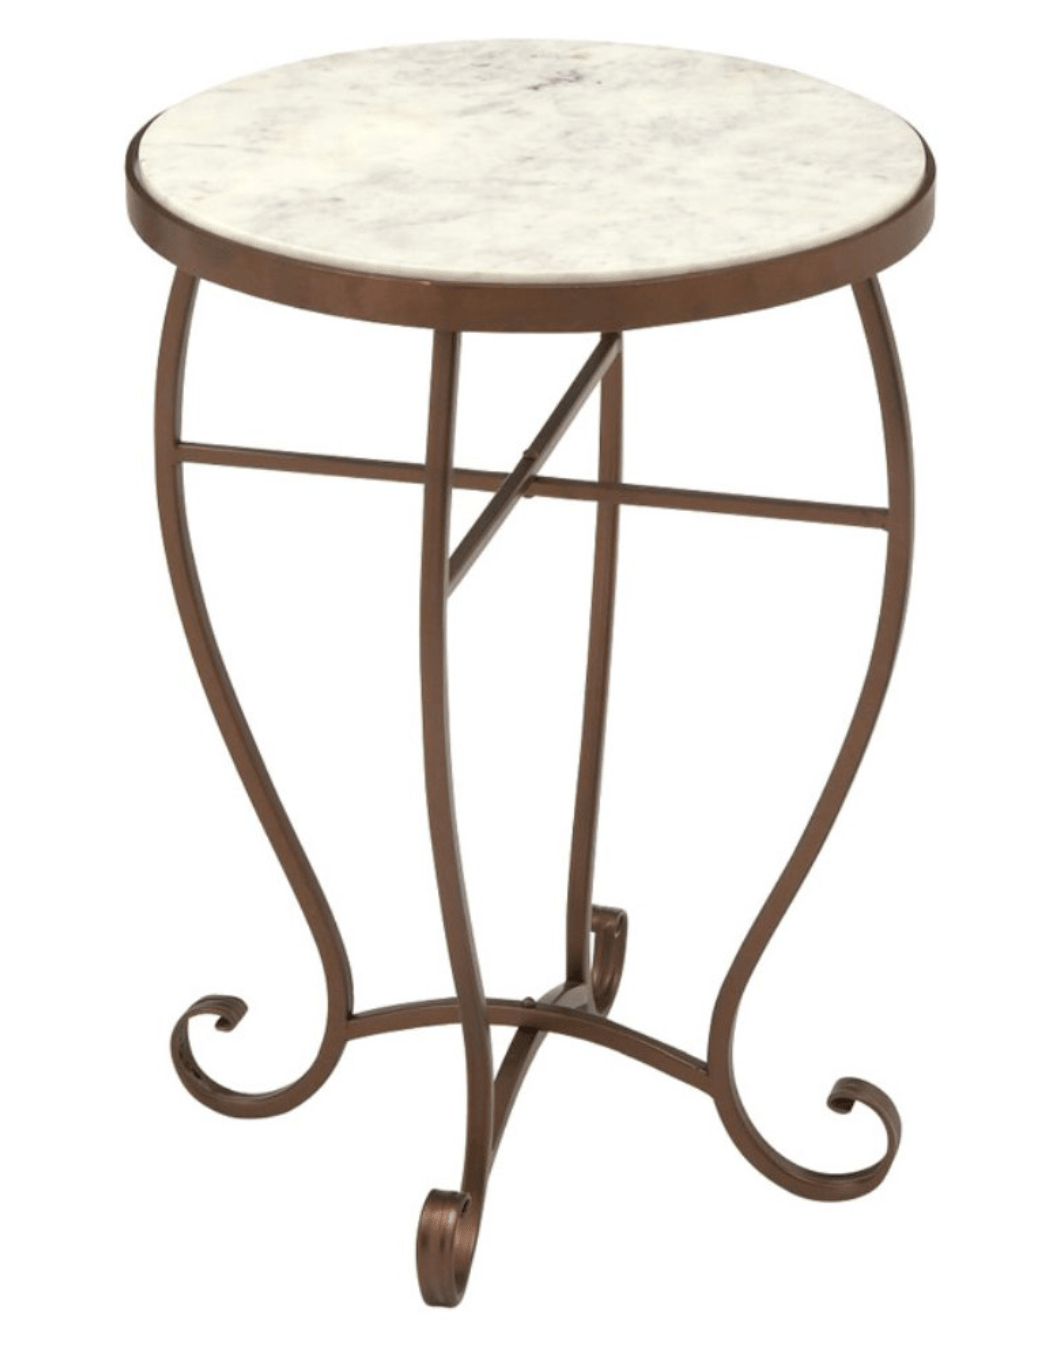 exciting marble accent table set bistro threshold top wood round antique small target faux killian nero metal lamp black and full size makeup vanity shaped side half kitchen